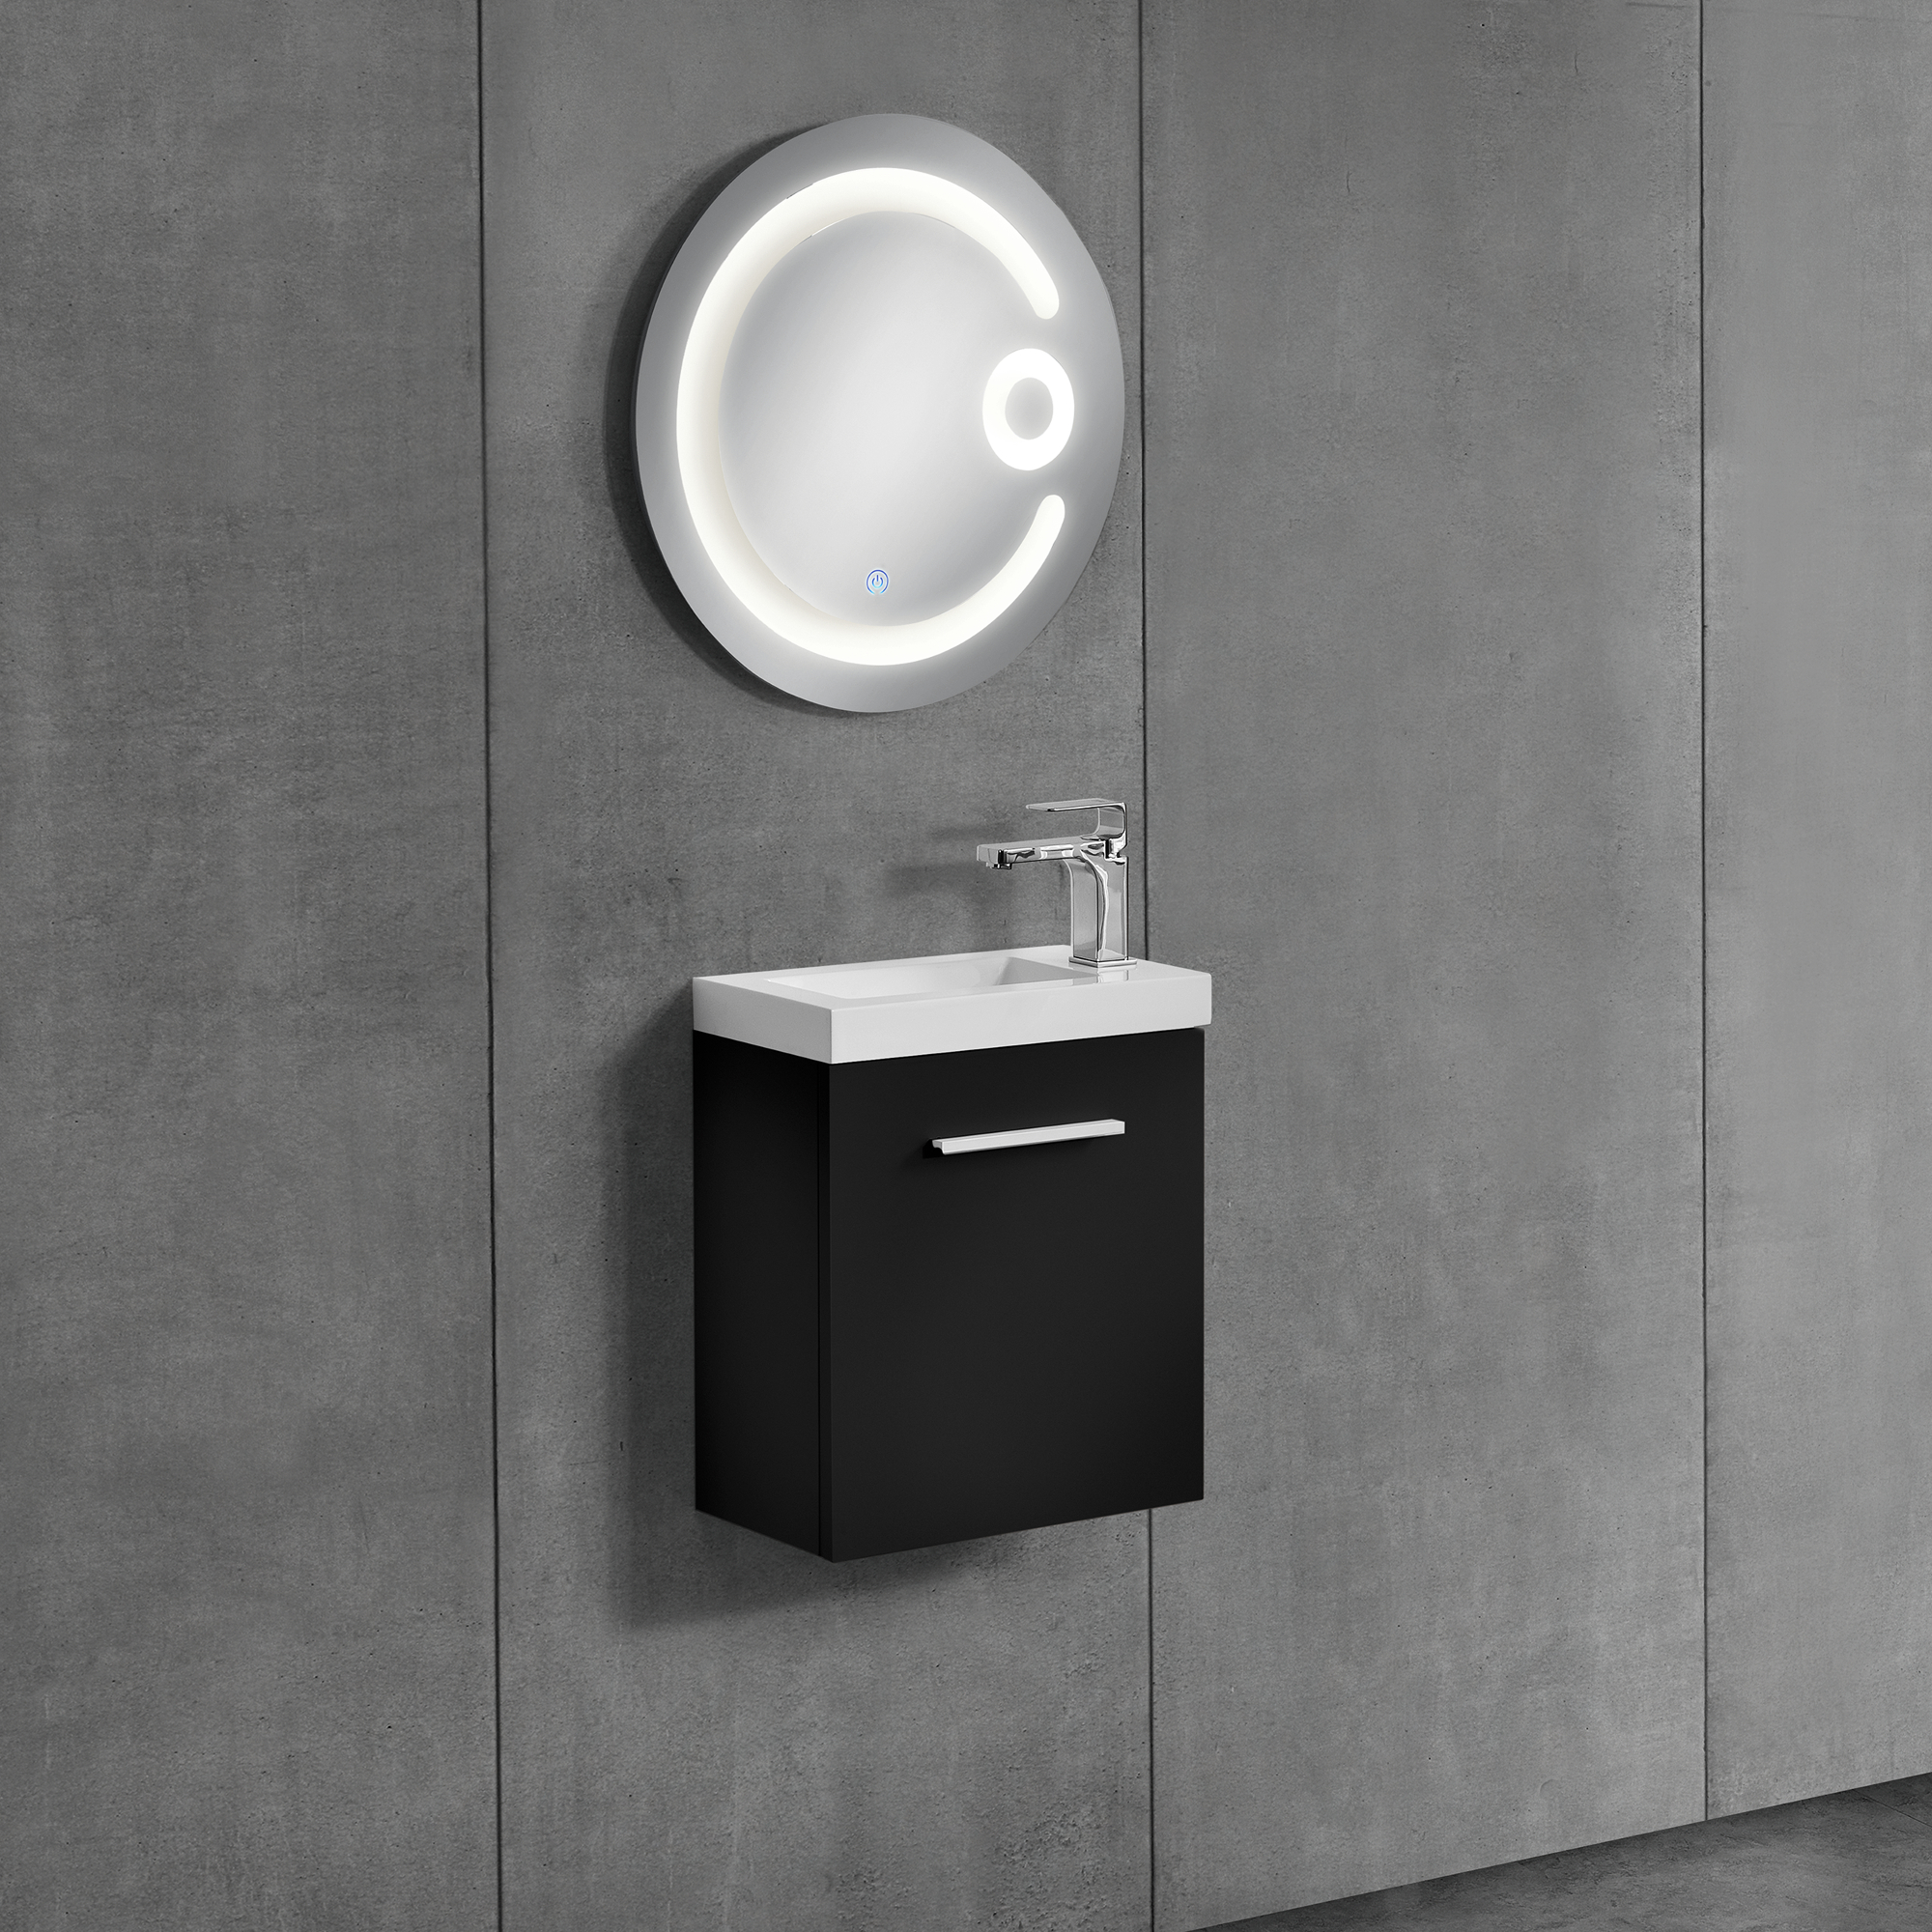 neuhaus armoire de salle bain miroir meuble dessous lavabo noir ebay. Black Bedroom Furniture Sets. Home Design Ideas